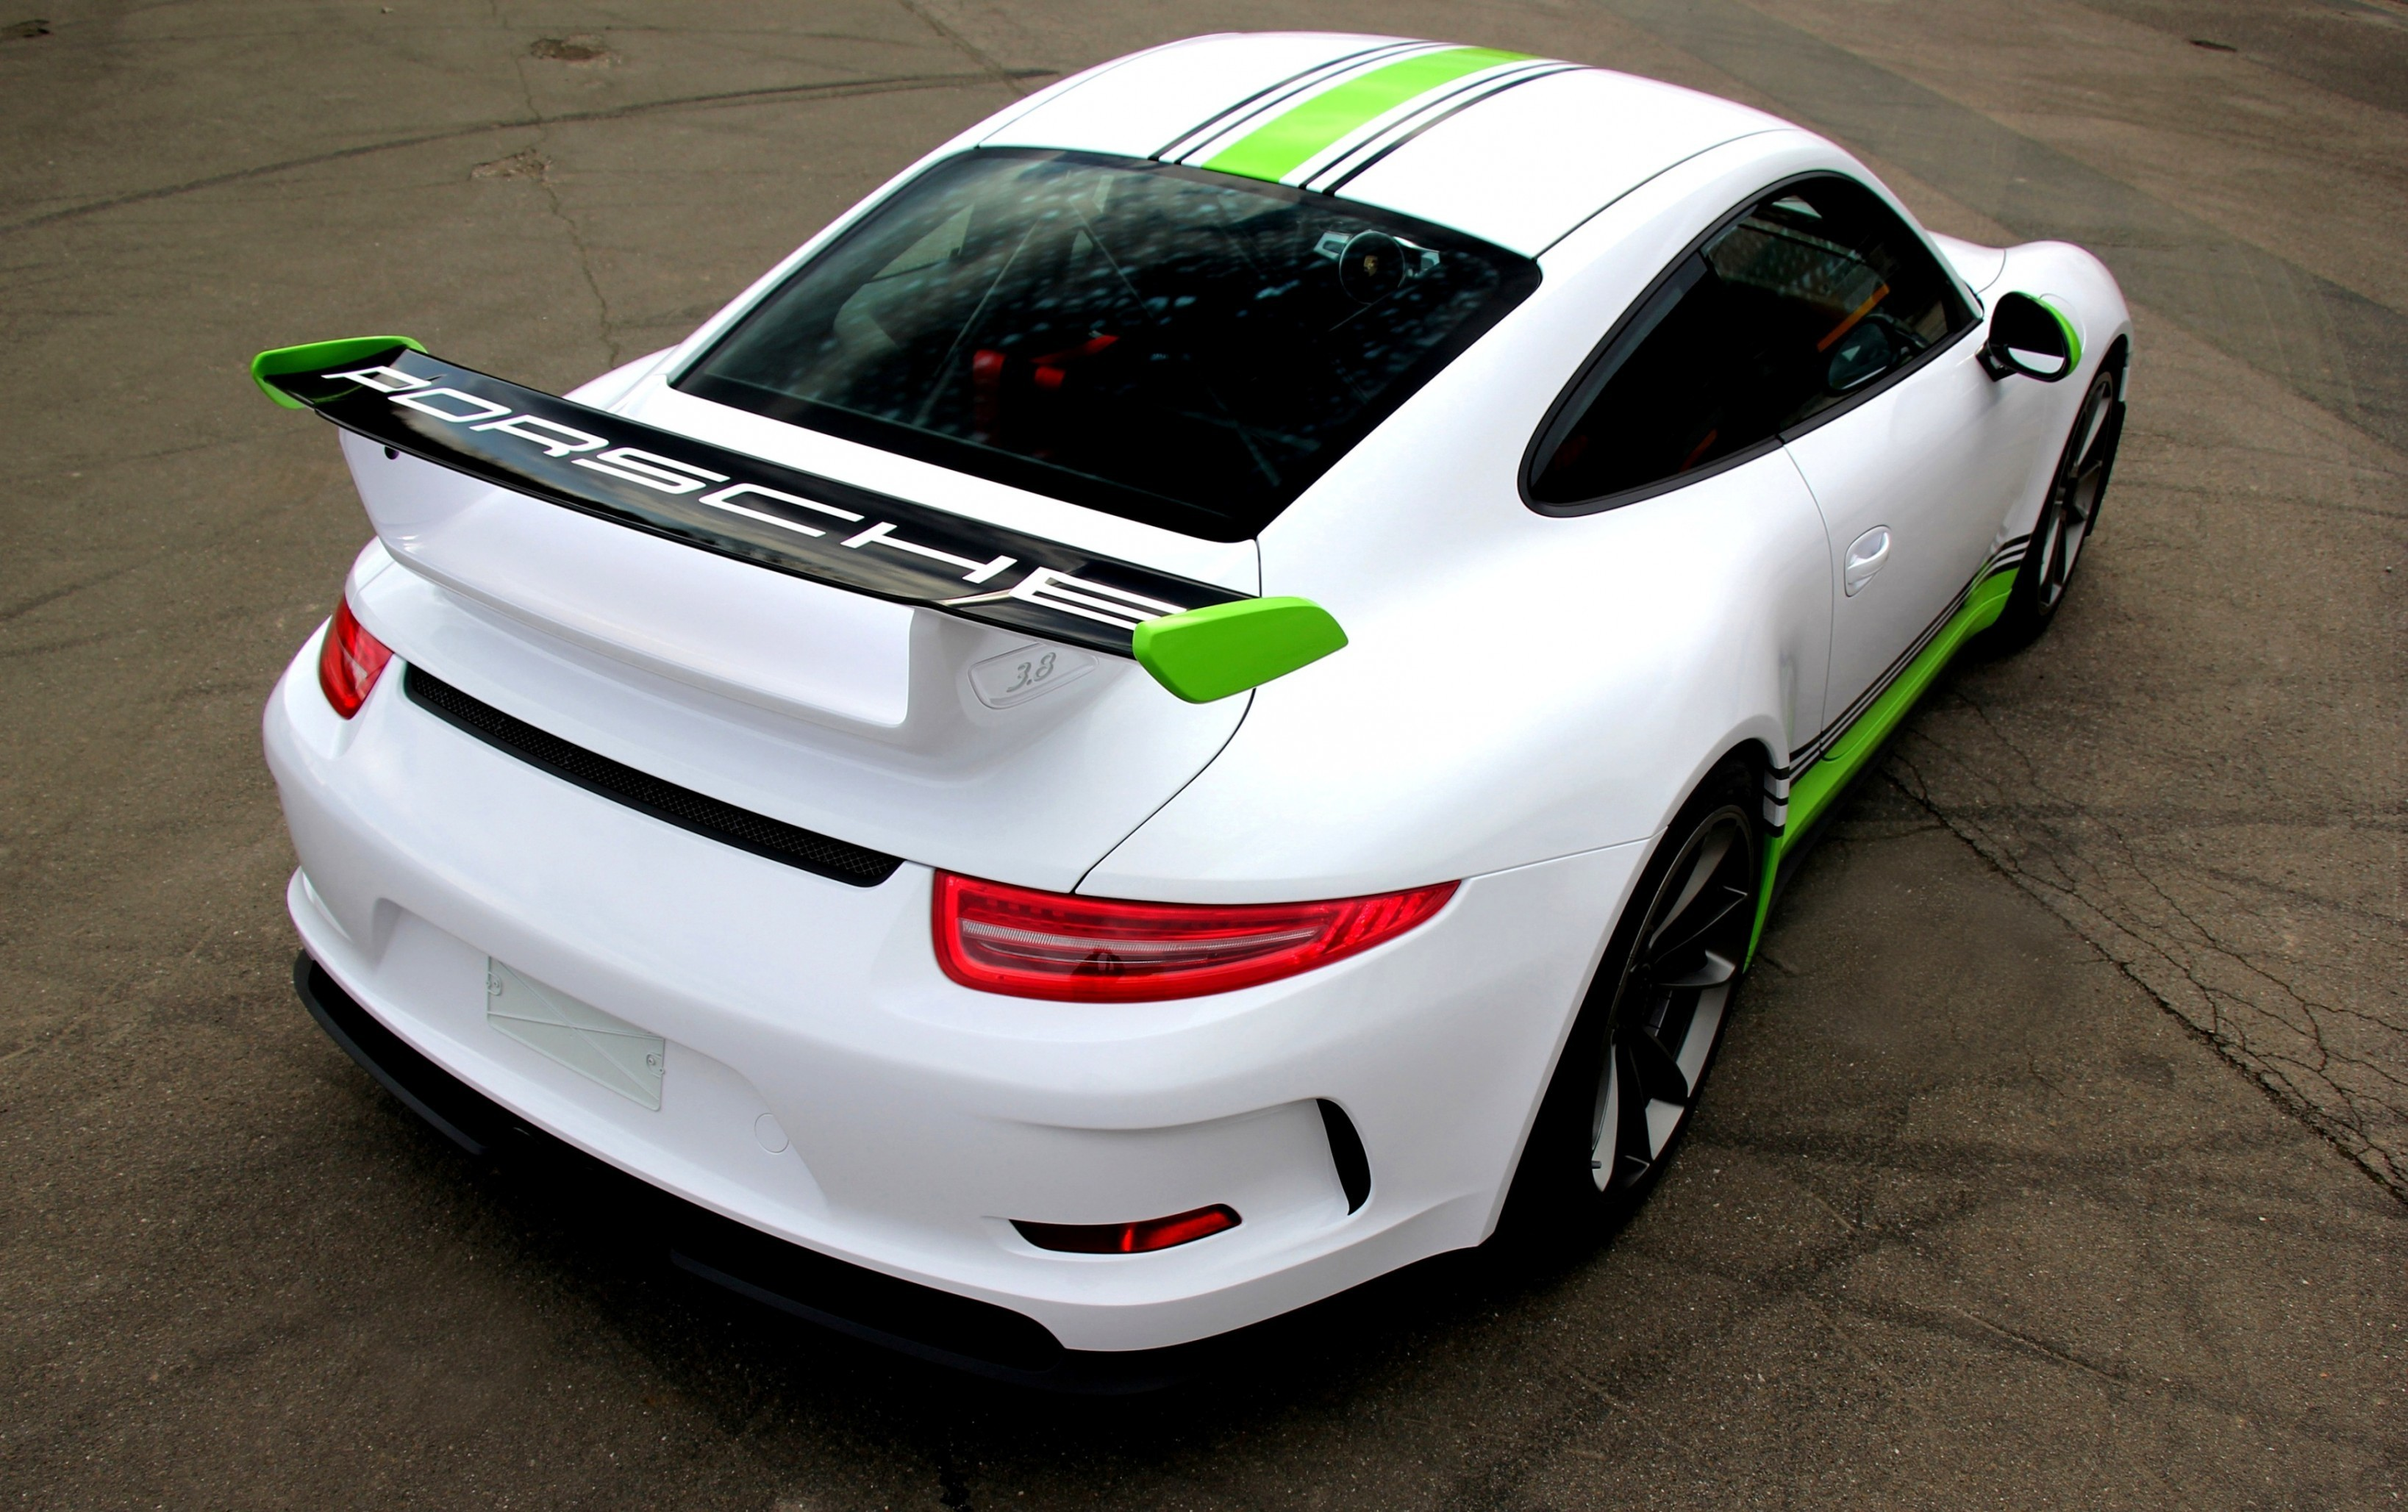 Car Paint Design Ideas find this pin and more on rc cars paint jobs by pearso888 Fostla De Shows Artful Porsche 911 Gt3 Foil Wrap Design And Execution